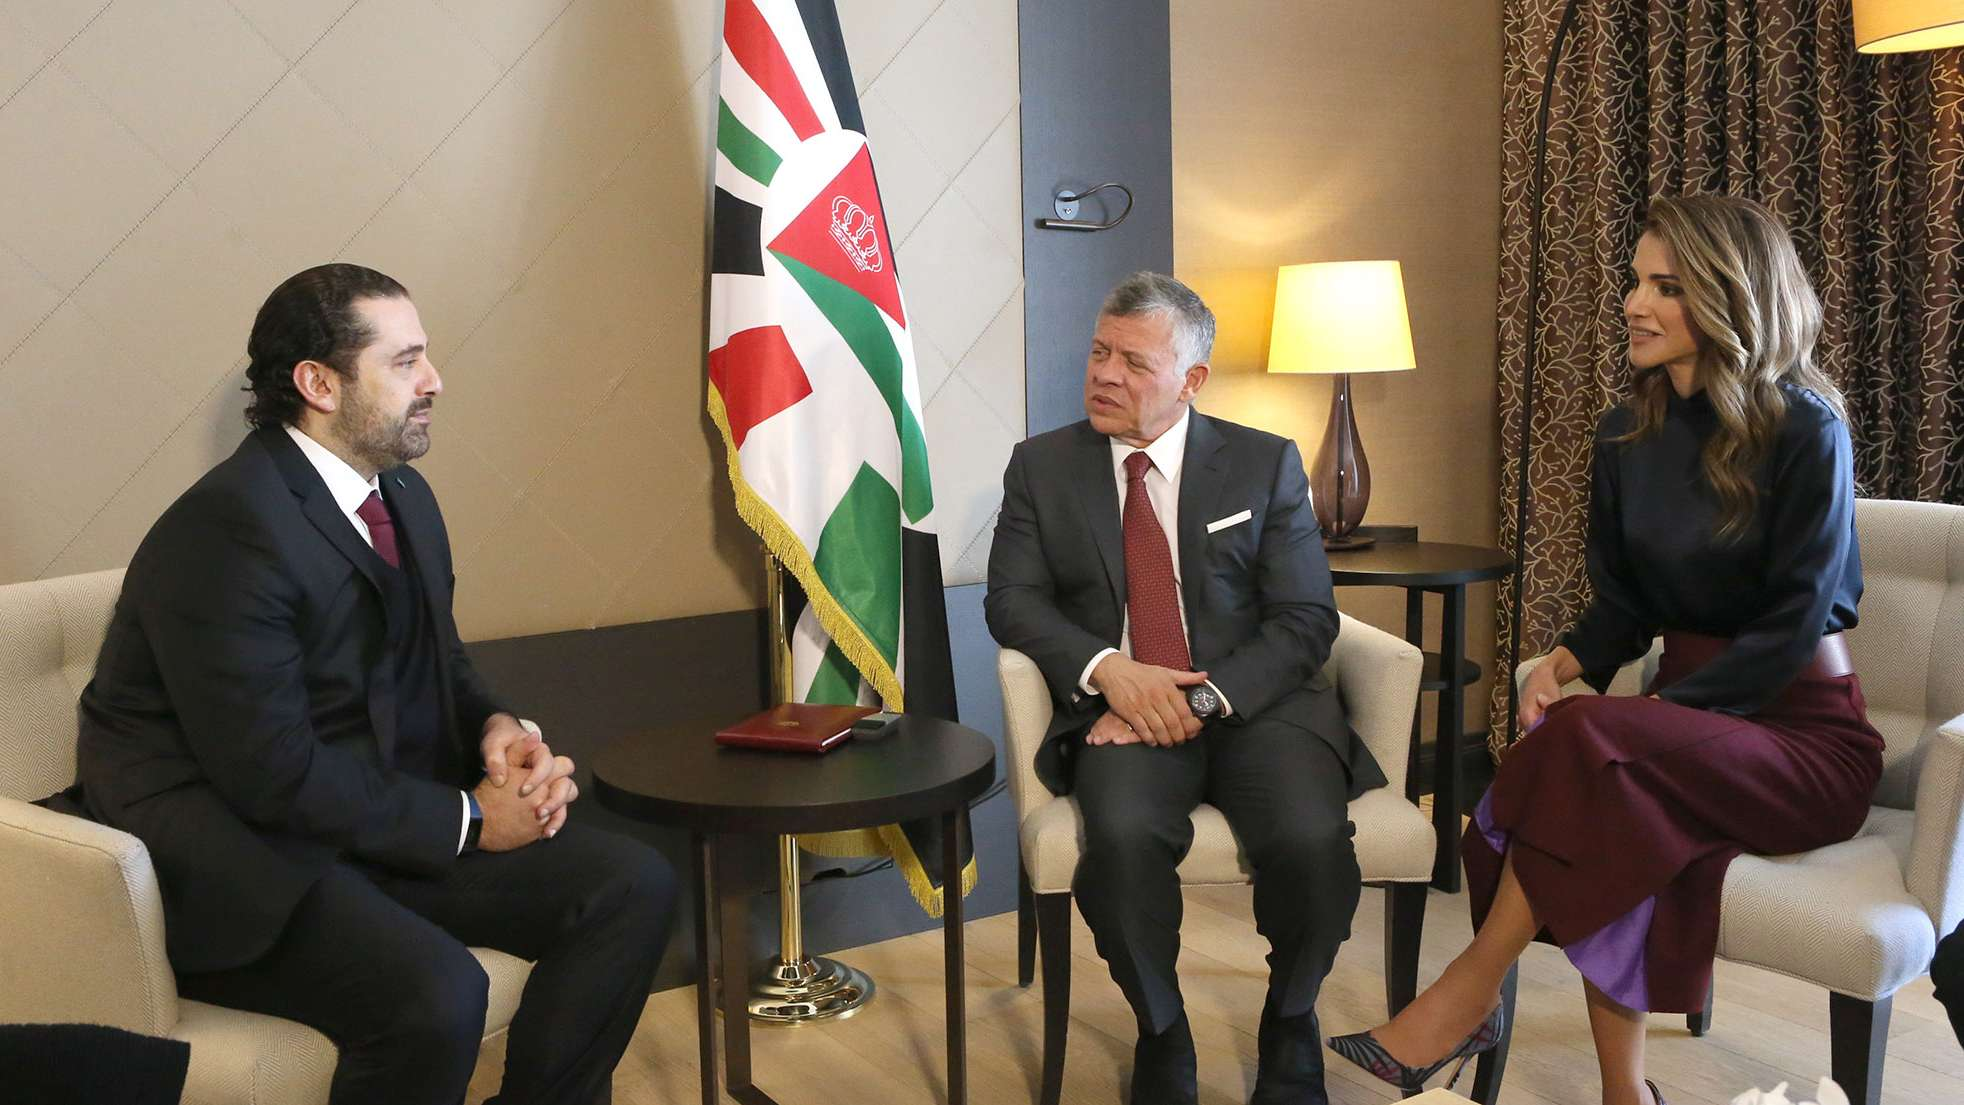 New realities. Lebanese Prime Minister Saad Hariri (L) Jordanian King Abdullah II (C) and Queen Rania of Jordan speak during the annual World Economic Forum (WEF) in Davos, on January 24. (The Jordanian Royal Palace)